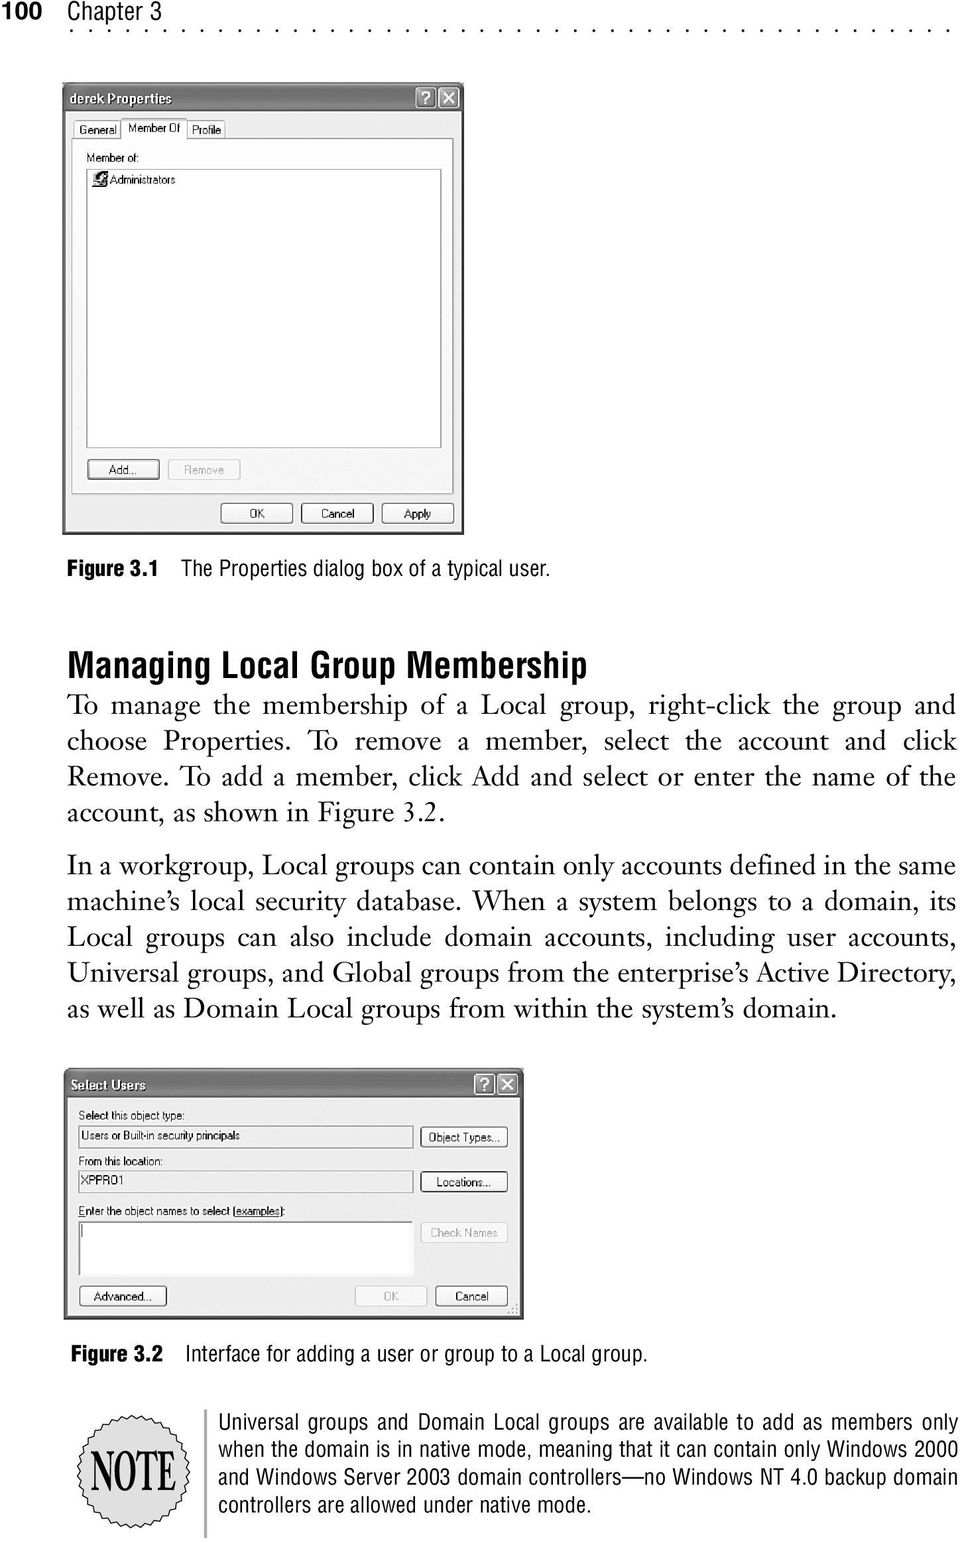 In a workgroup, Local groups can contain only accounts defined in the same machine s local security database.